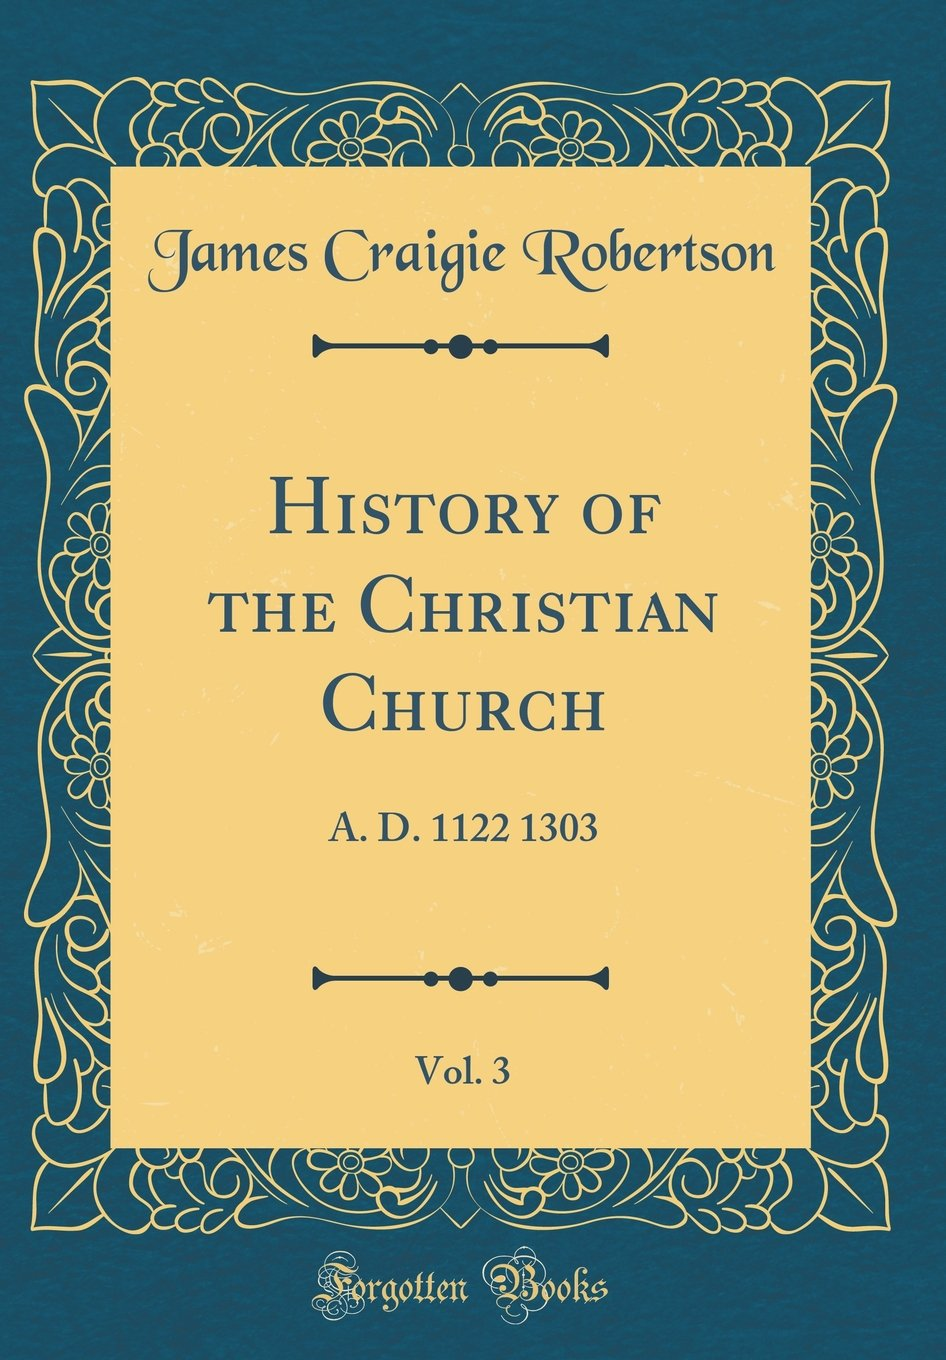 History of the Christian Church, Vol. 3: A. D. 1122 1303 (Classic Reprint) PDF